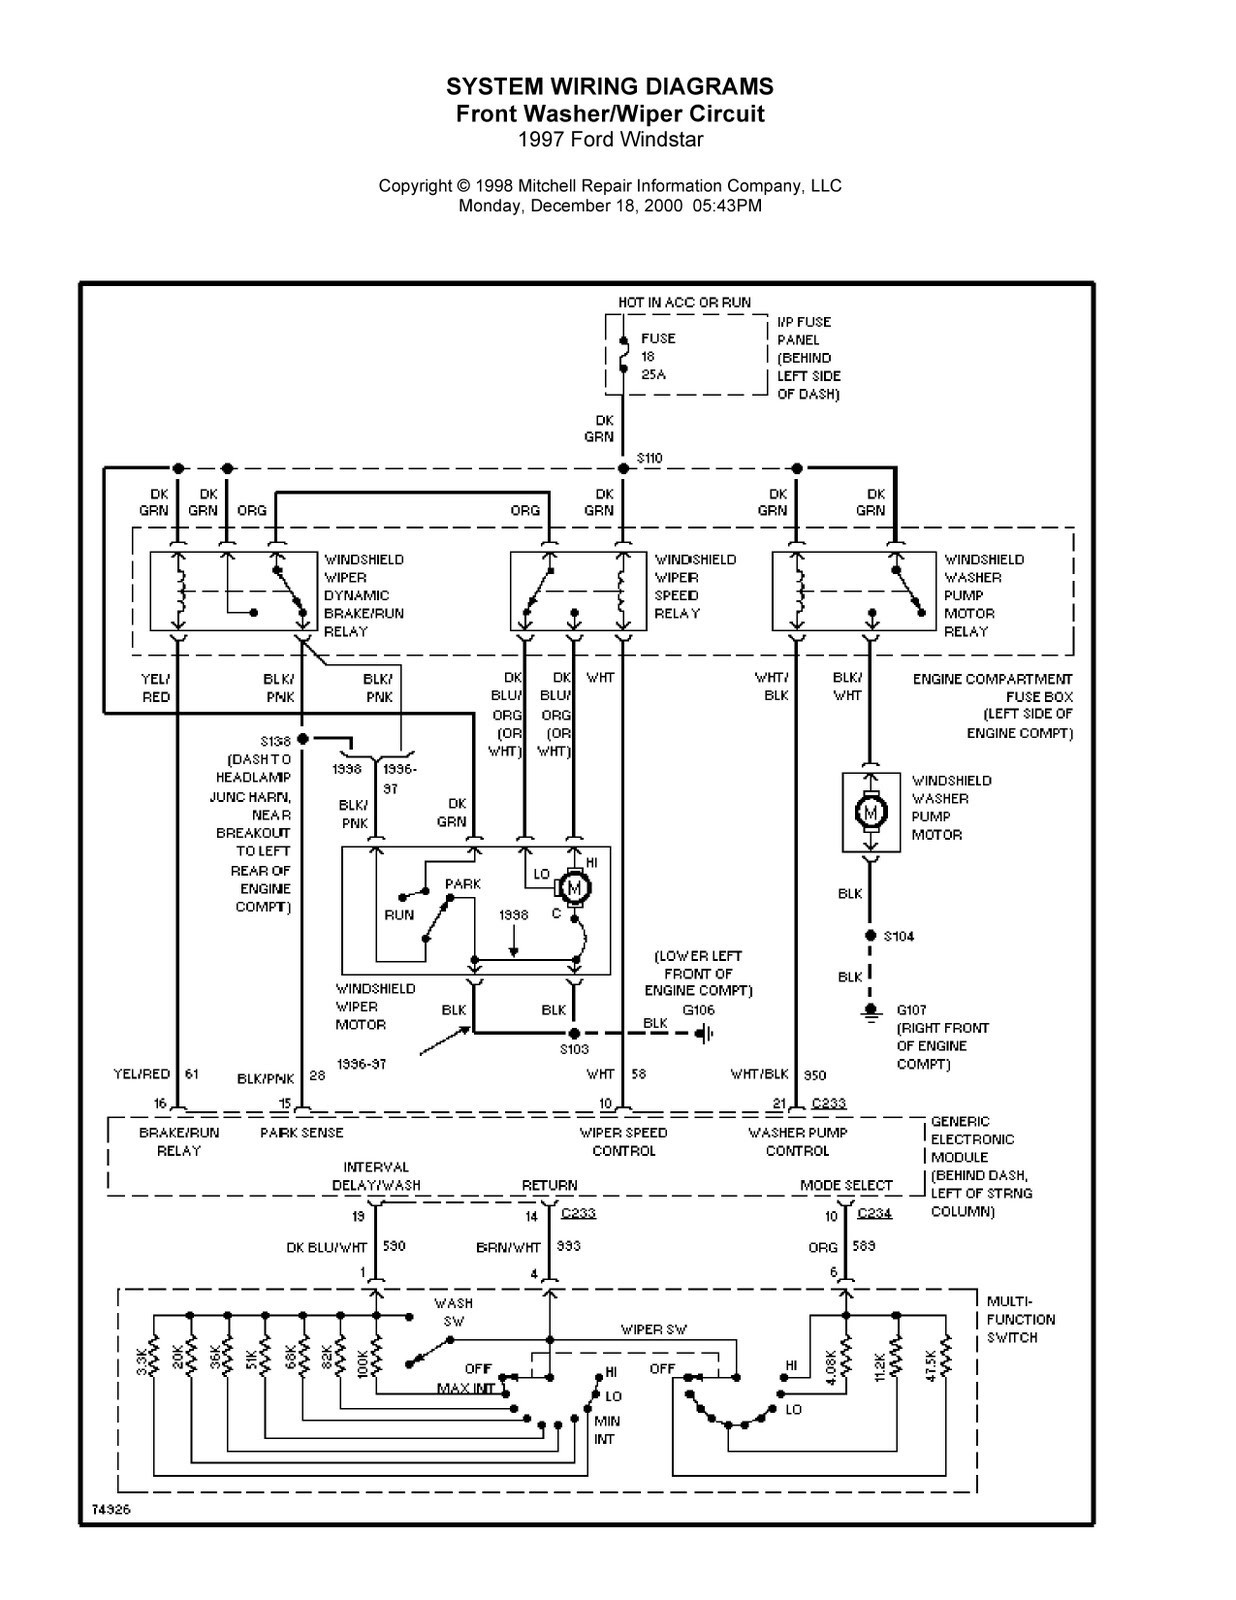 File Name: Charging System Wiring Diagram For 2000 Ford